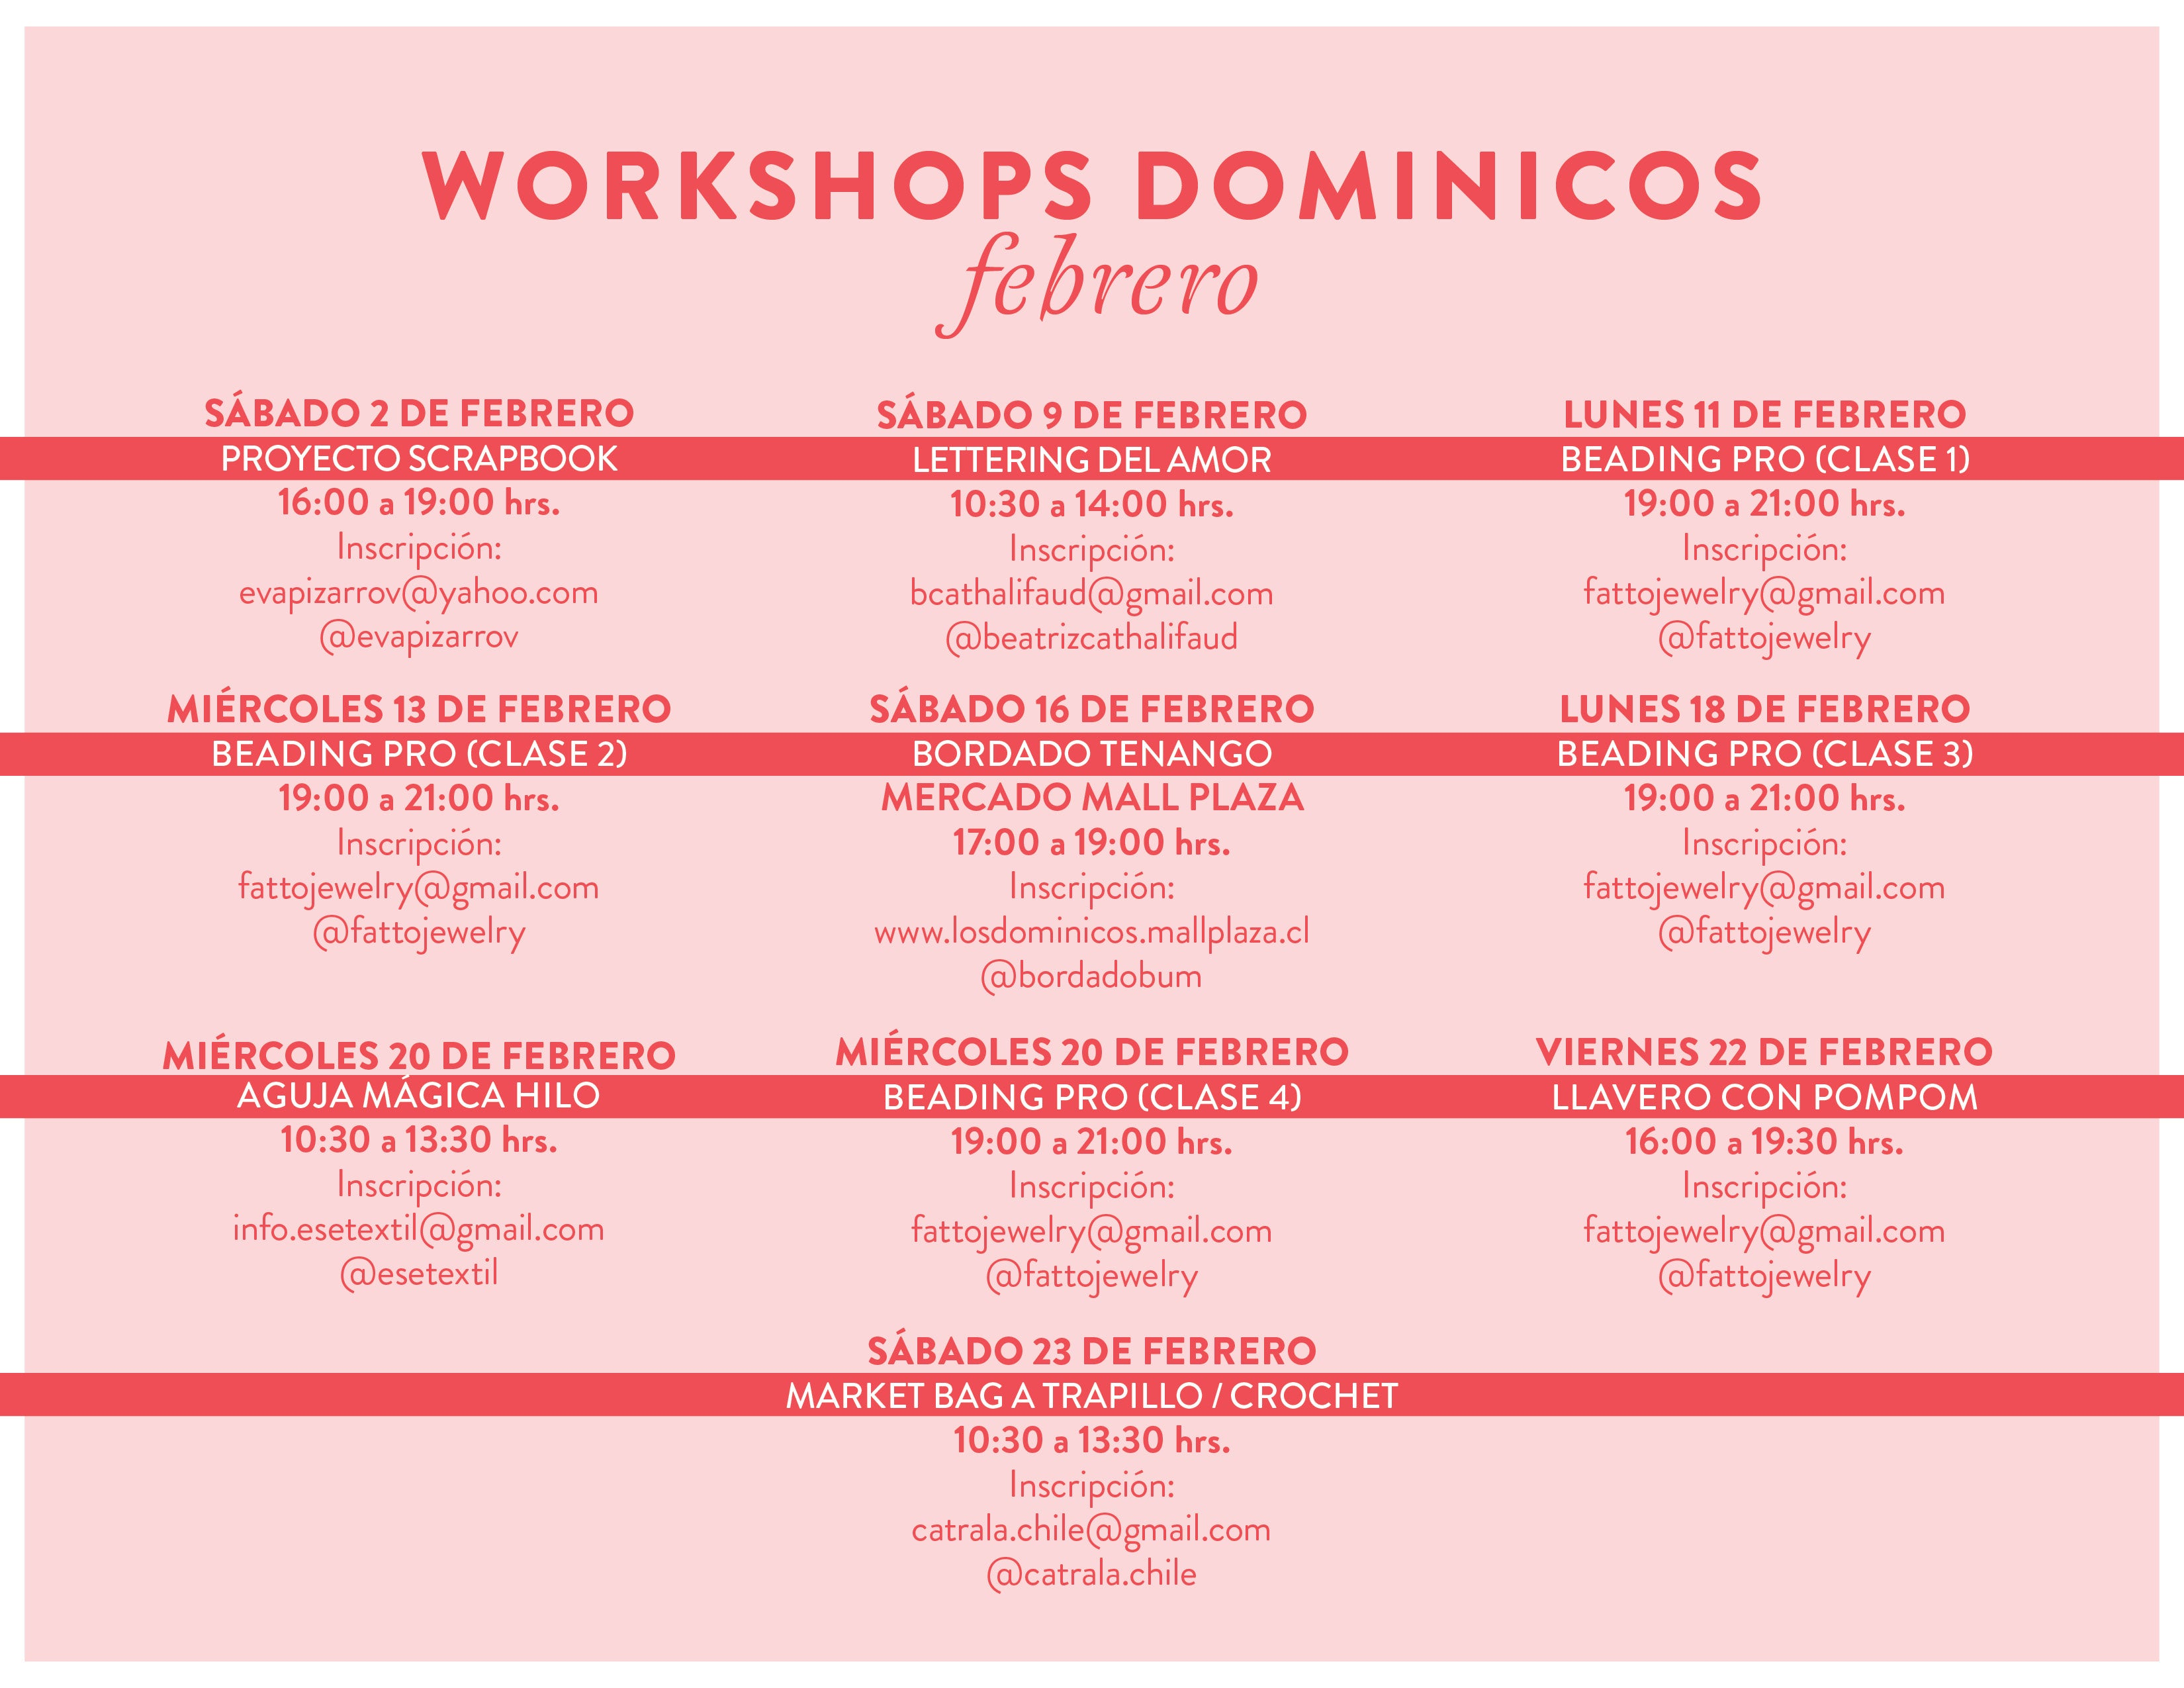 workshops mall plaza los dominicos